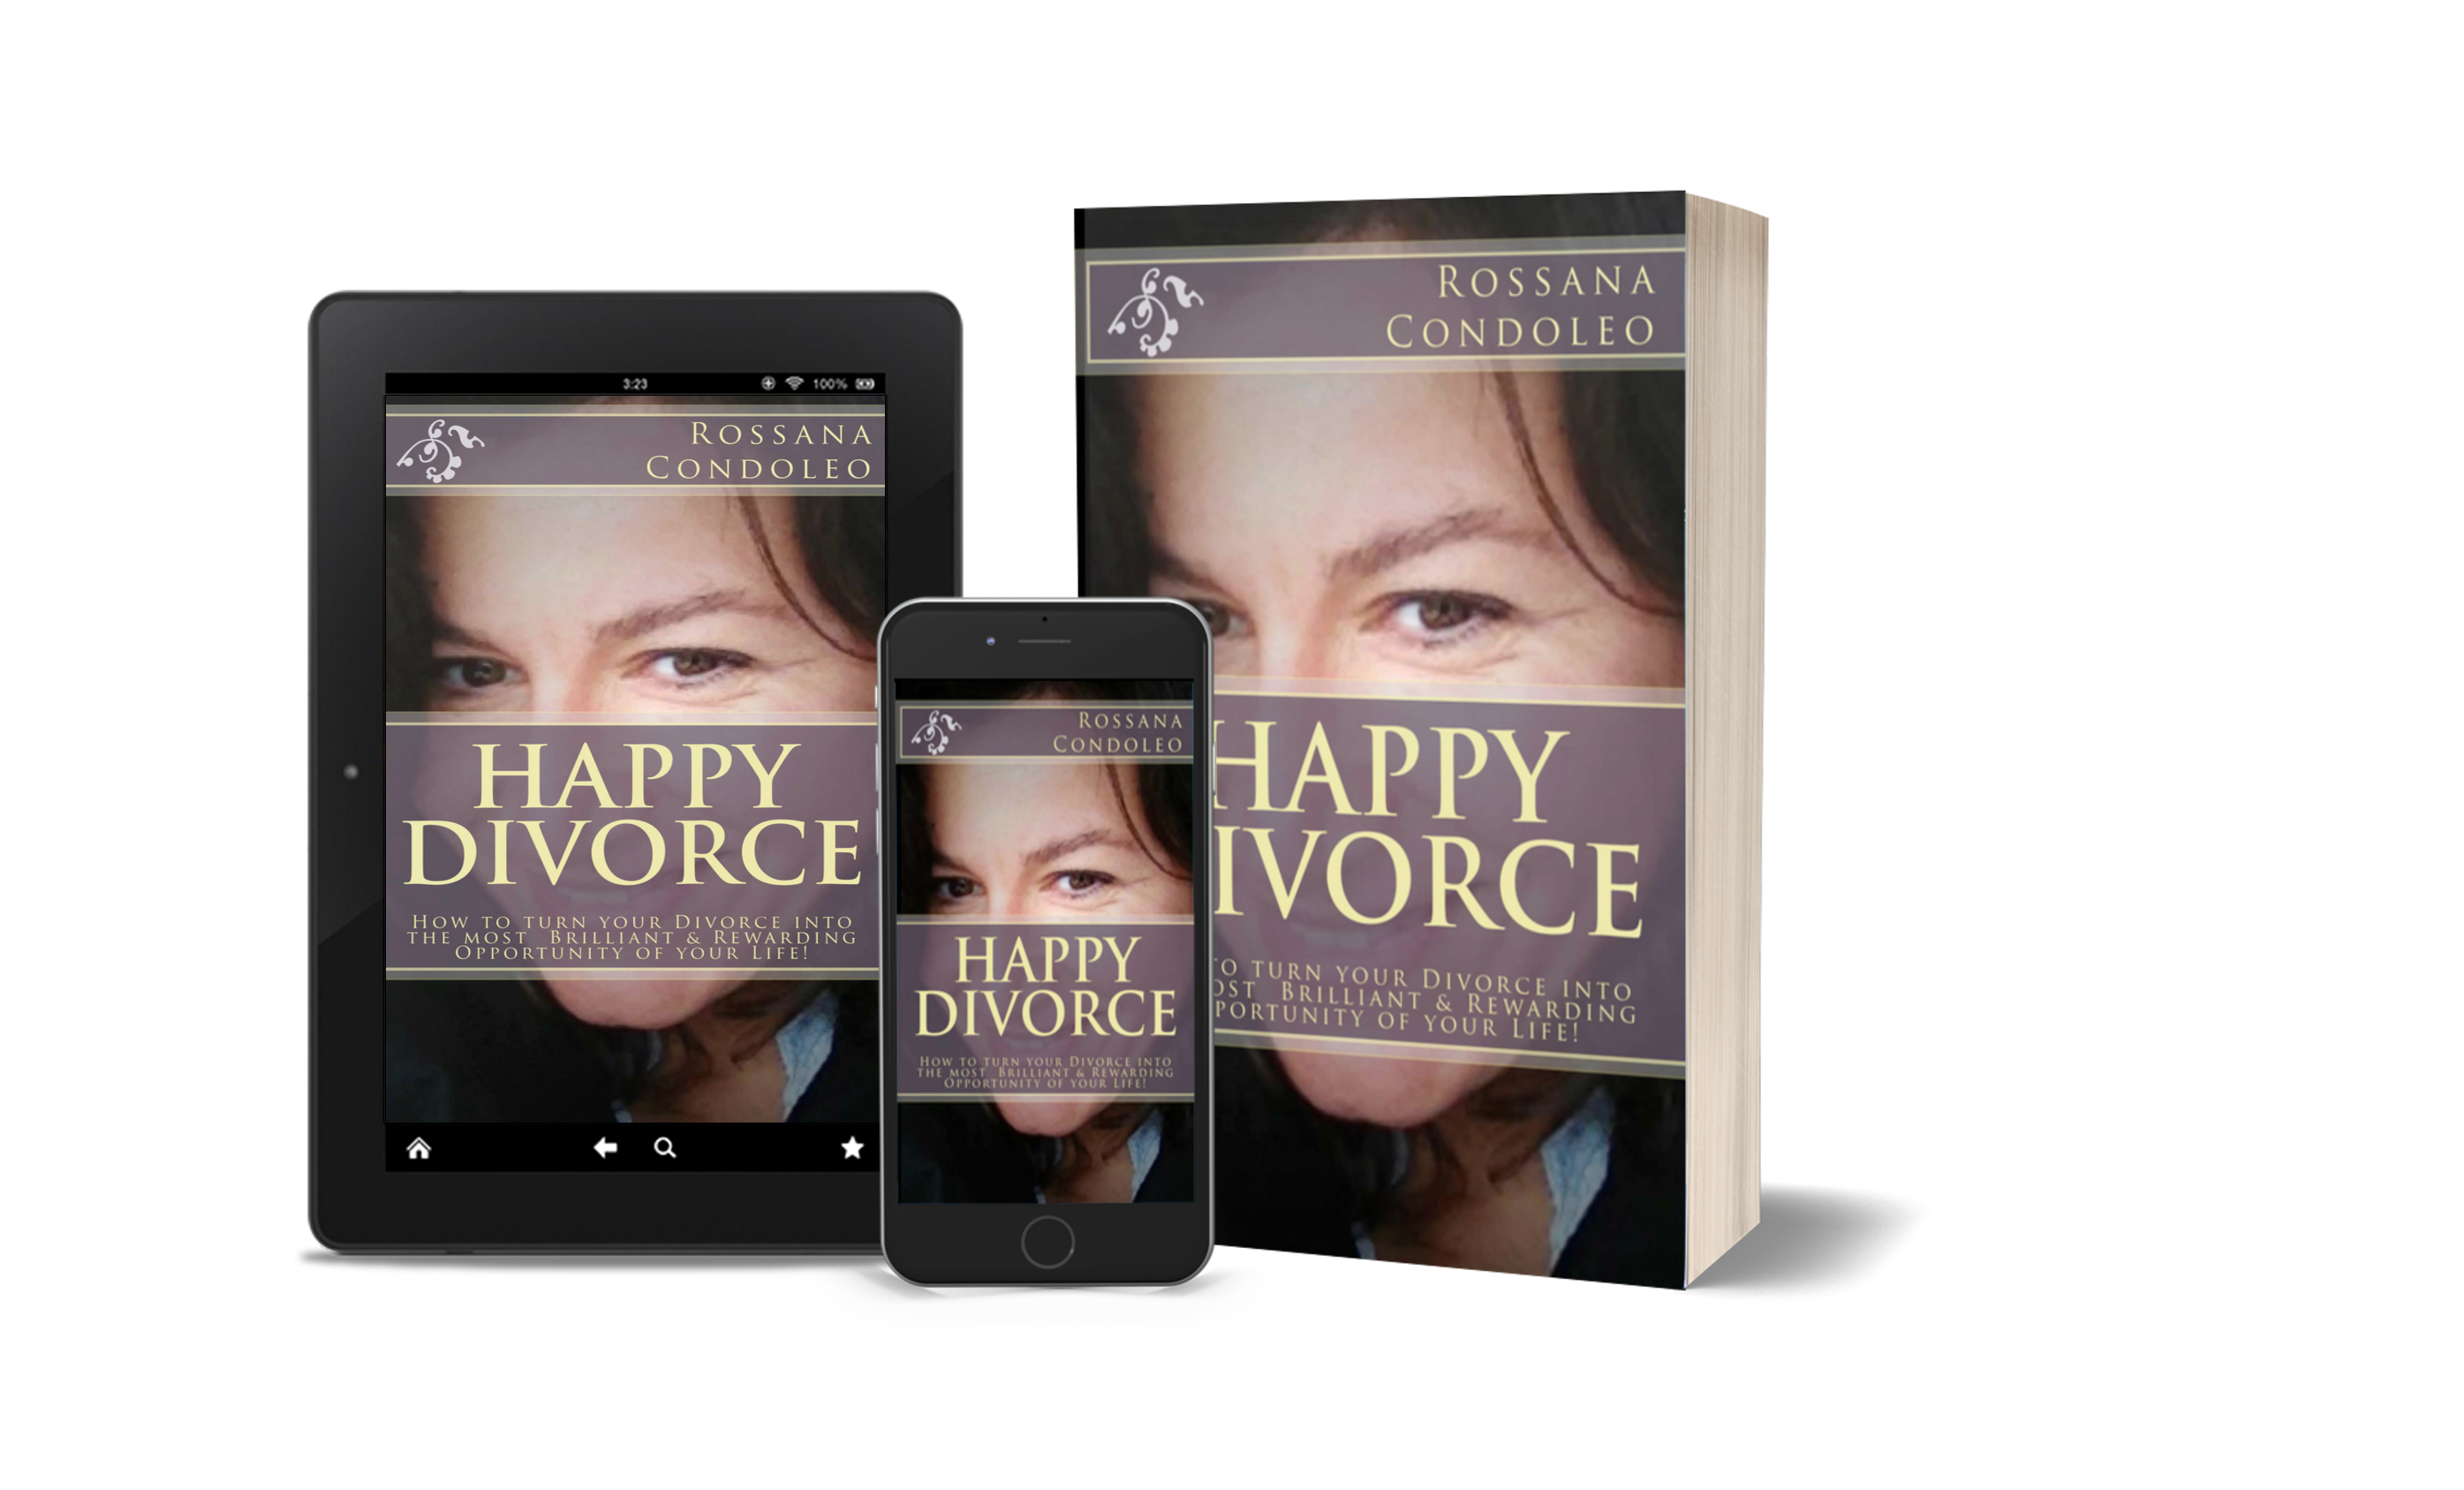 Happy Divorce, by Rossana Condoleo